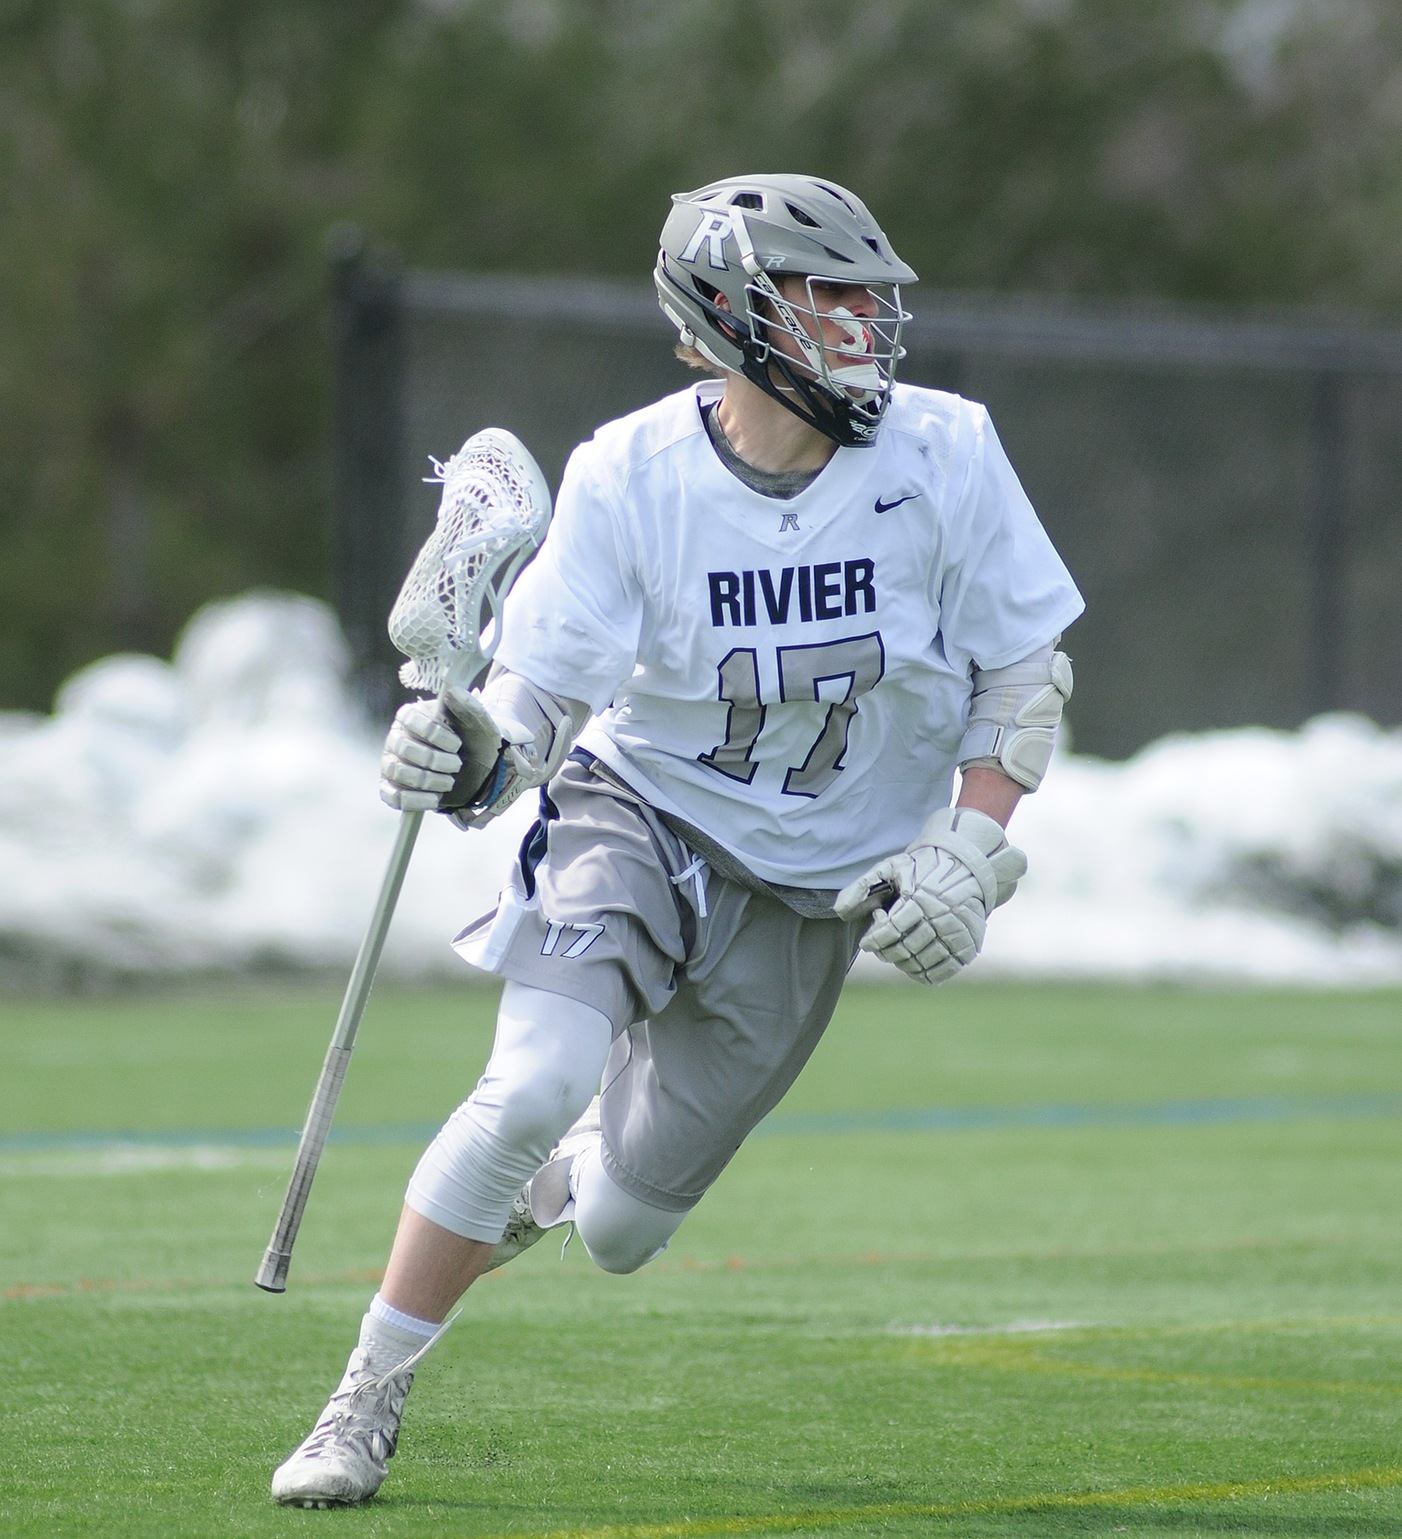 Men's Lacrosse: Raiders open season with win over Nichols, 8-7